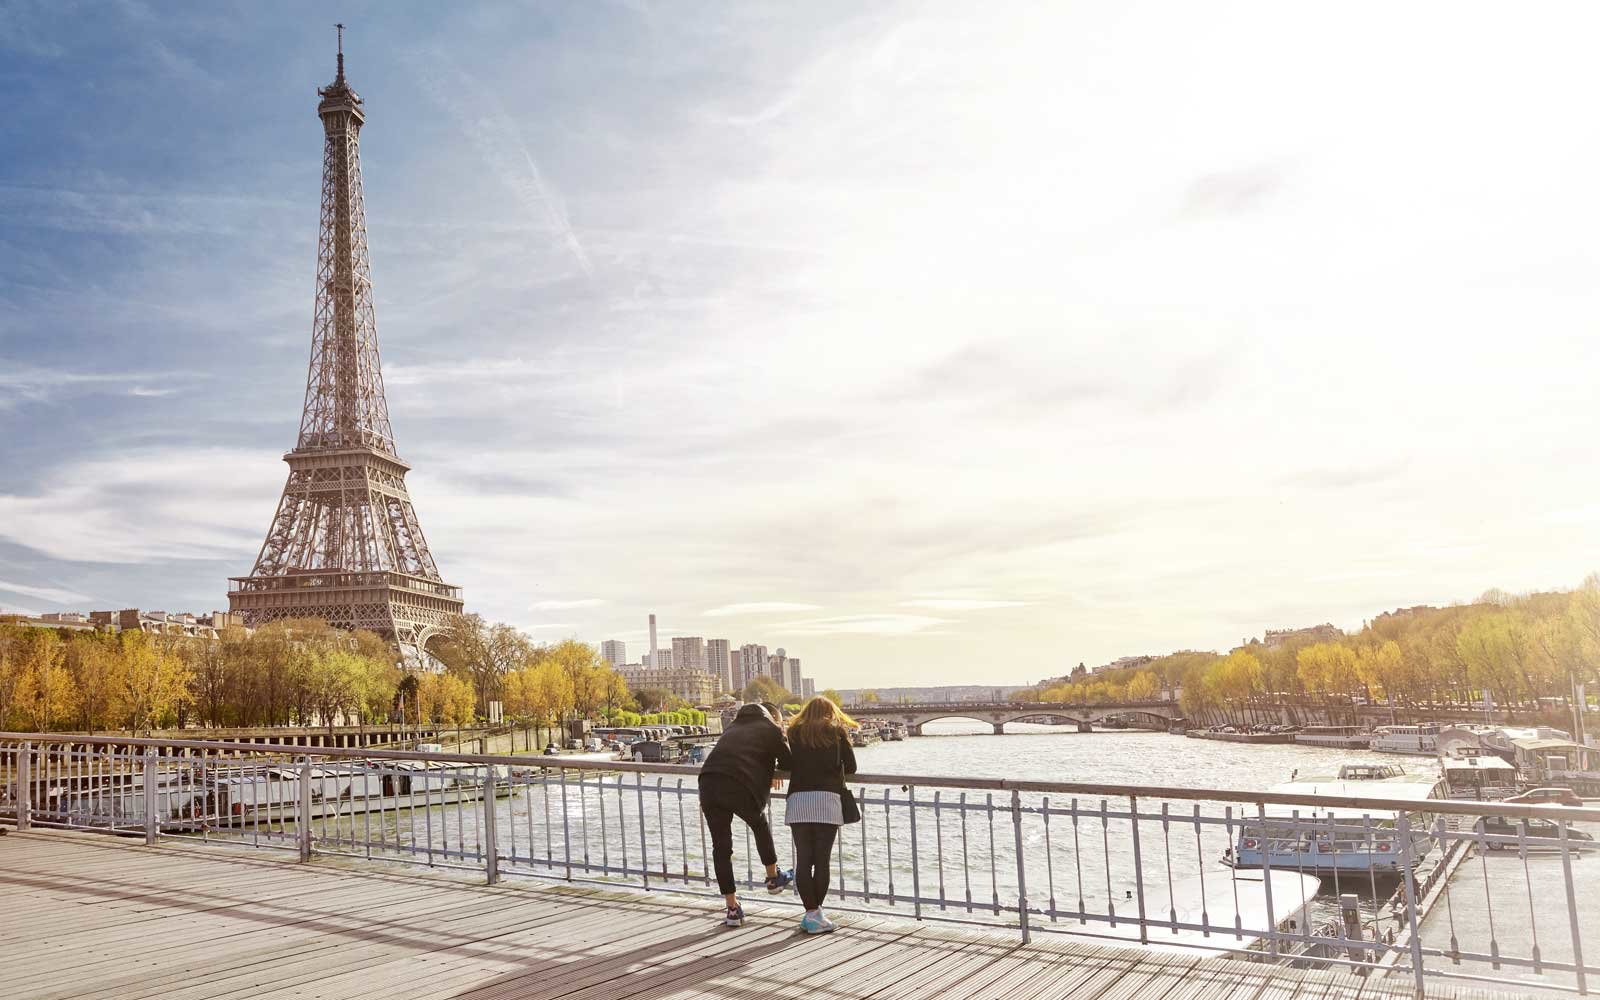 Take a flight to Paris from the U.S. starting at $329 round-trip with icelandair's latest sale.